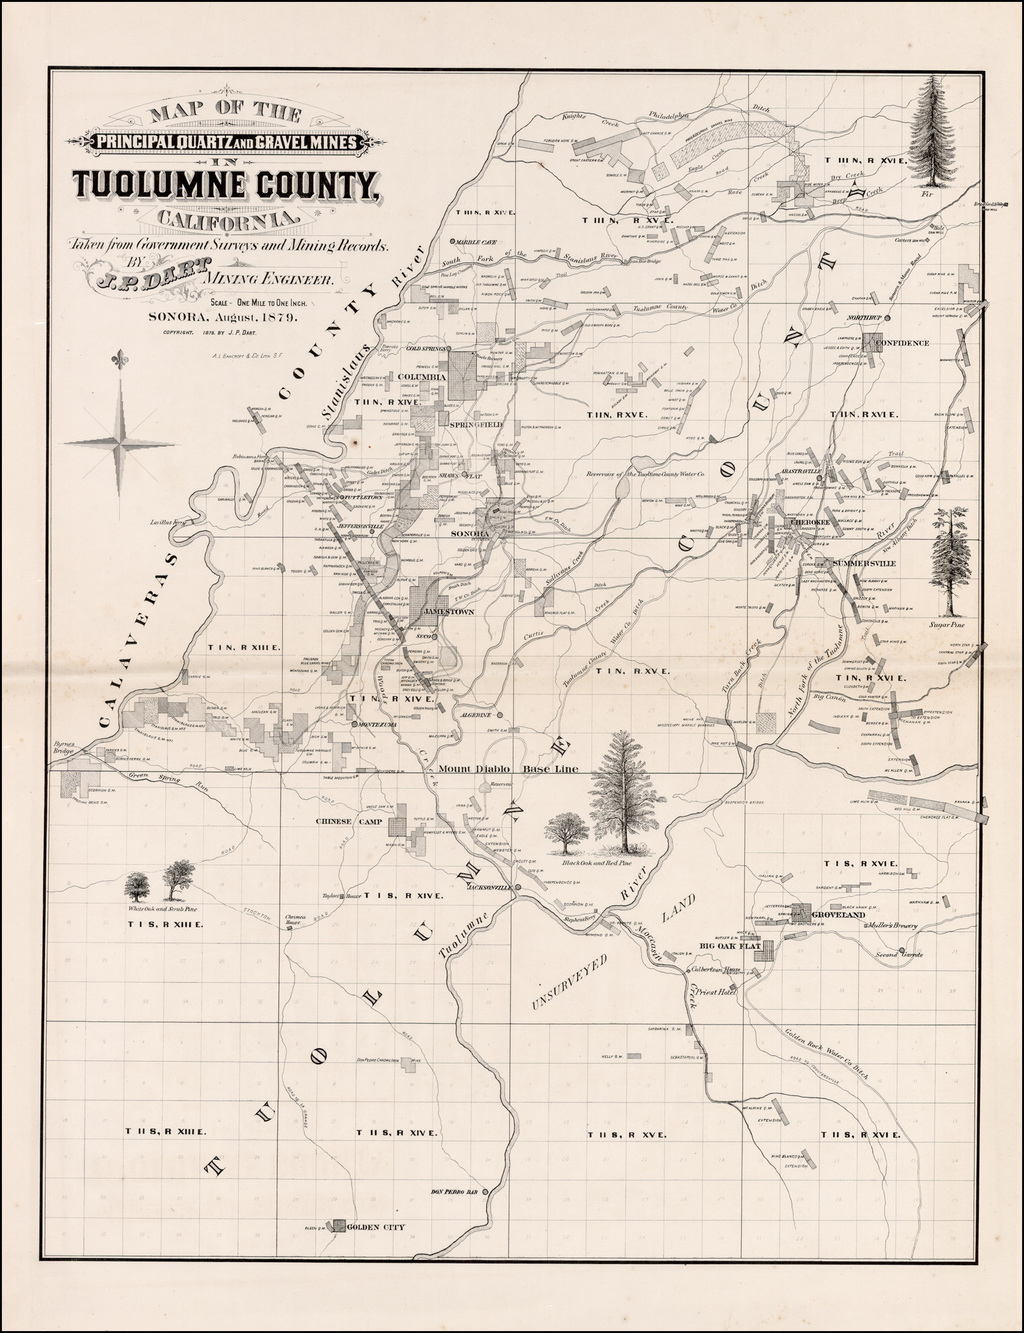 Map of the Principal Quartz and Gravel Mines in Tuolumne County California.  ….Sonora, August, 1879. By Dart / A.L. Bancroft & Co.